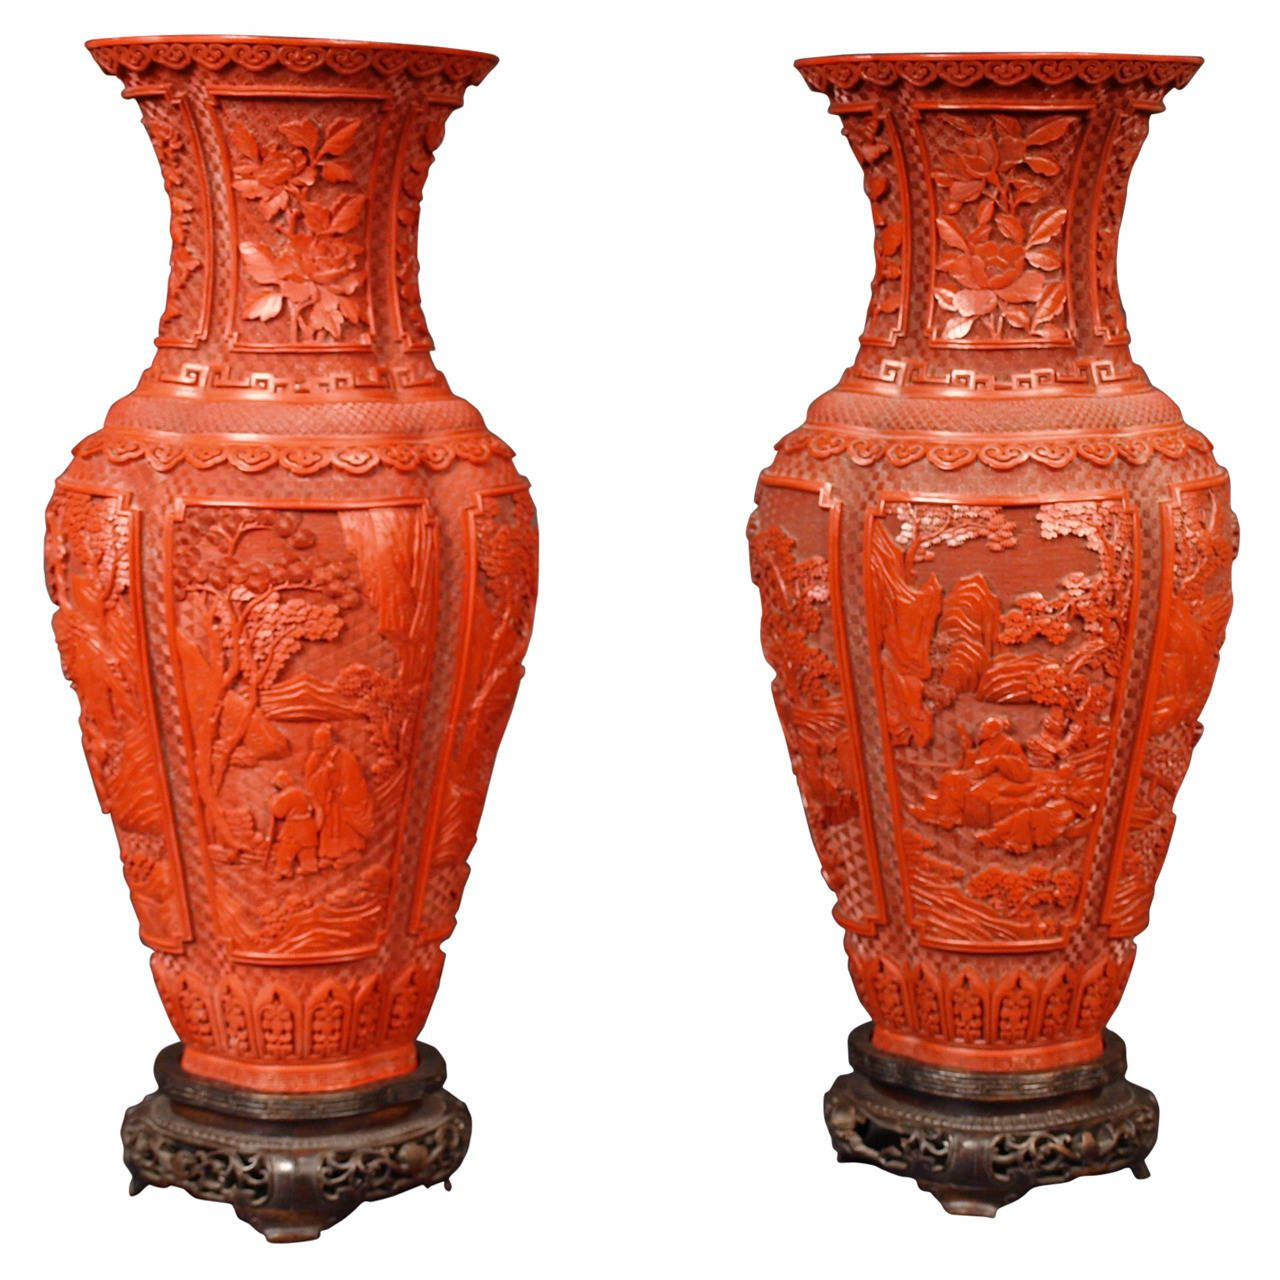 Pair Of Cinnabar Lacquer Baluster Vases China Qing Dynasty 19th Century From A Unique Collection Of Antique And Mod China Patterns Asian Art Art Furniture